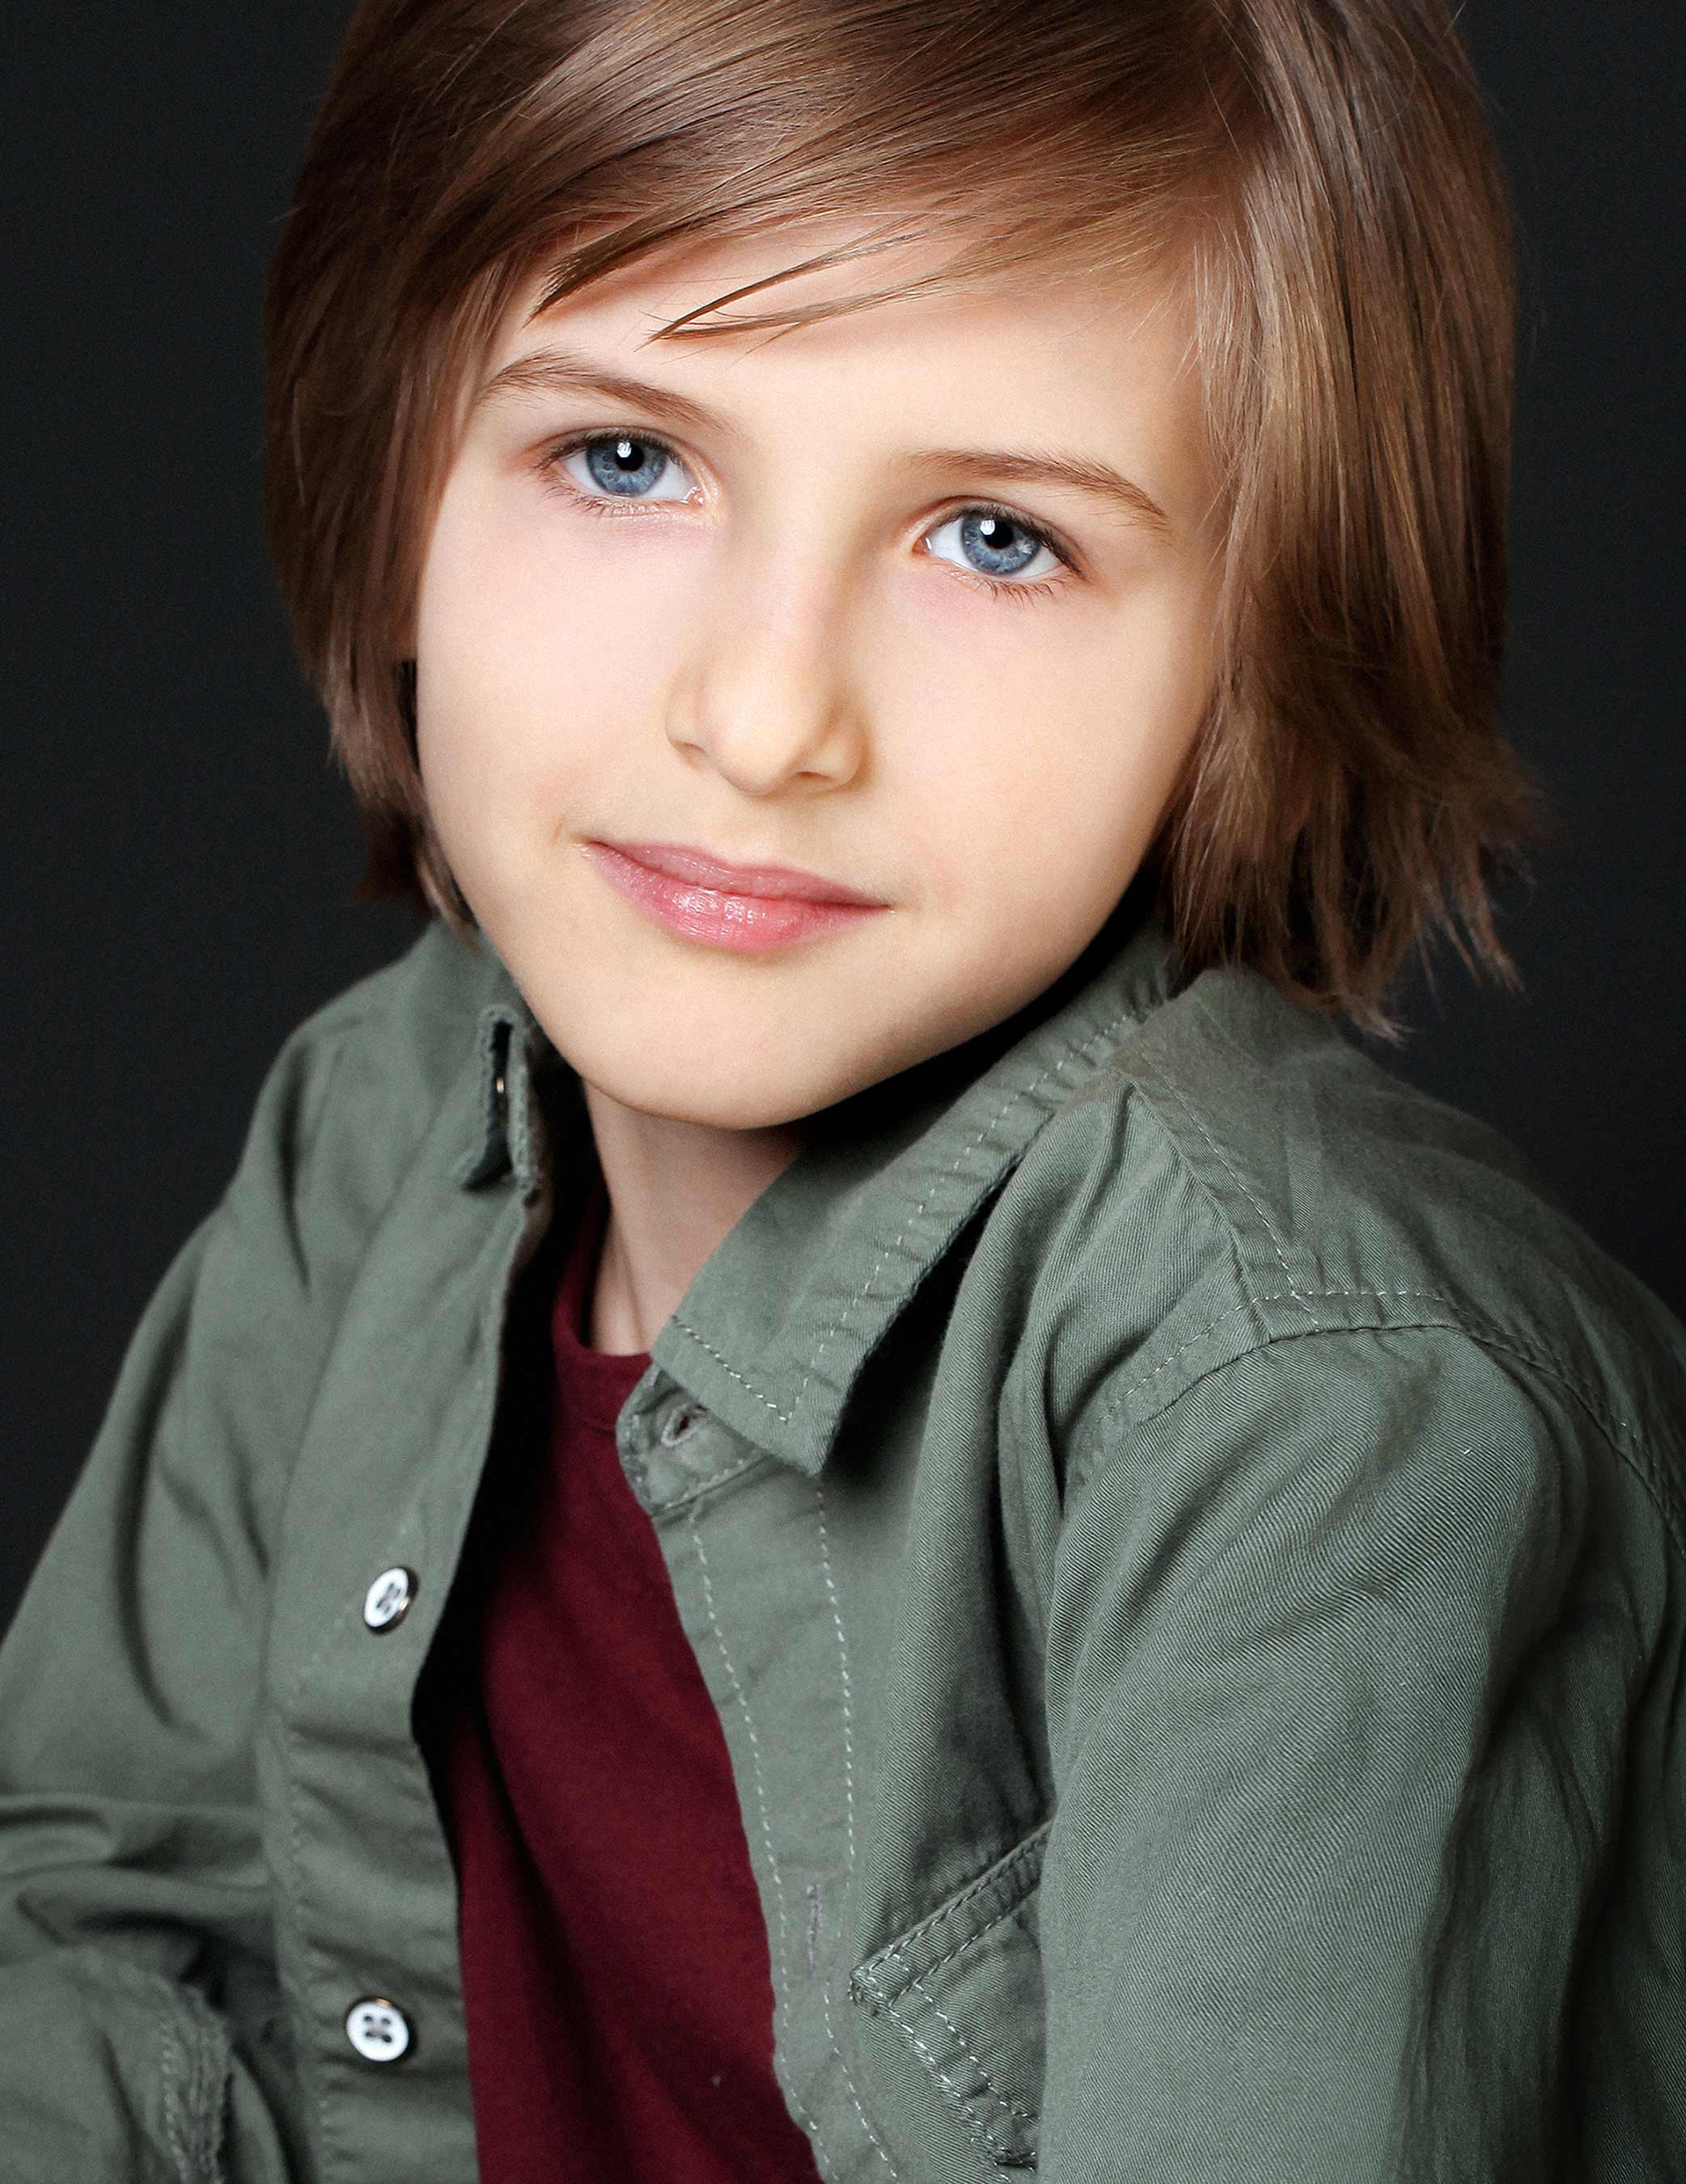 headshots-london-toronto-ontario-child-actor-twins-movies-la-nyc-detroit